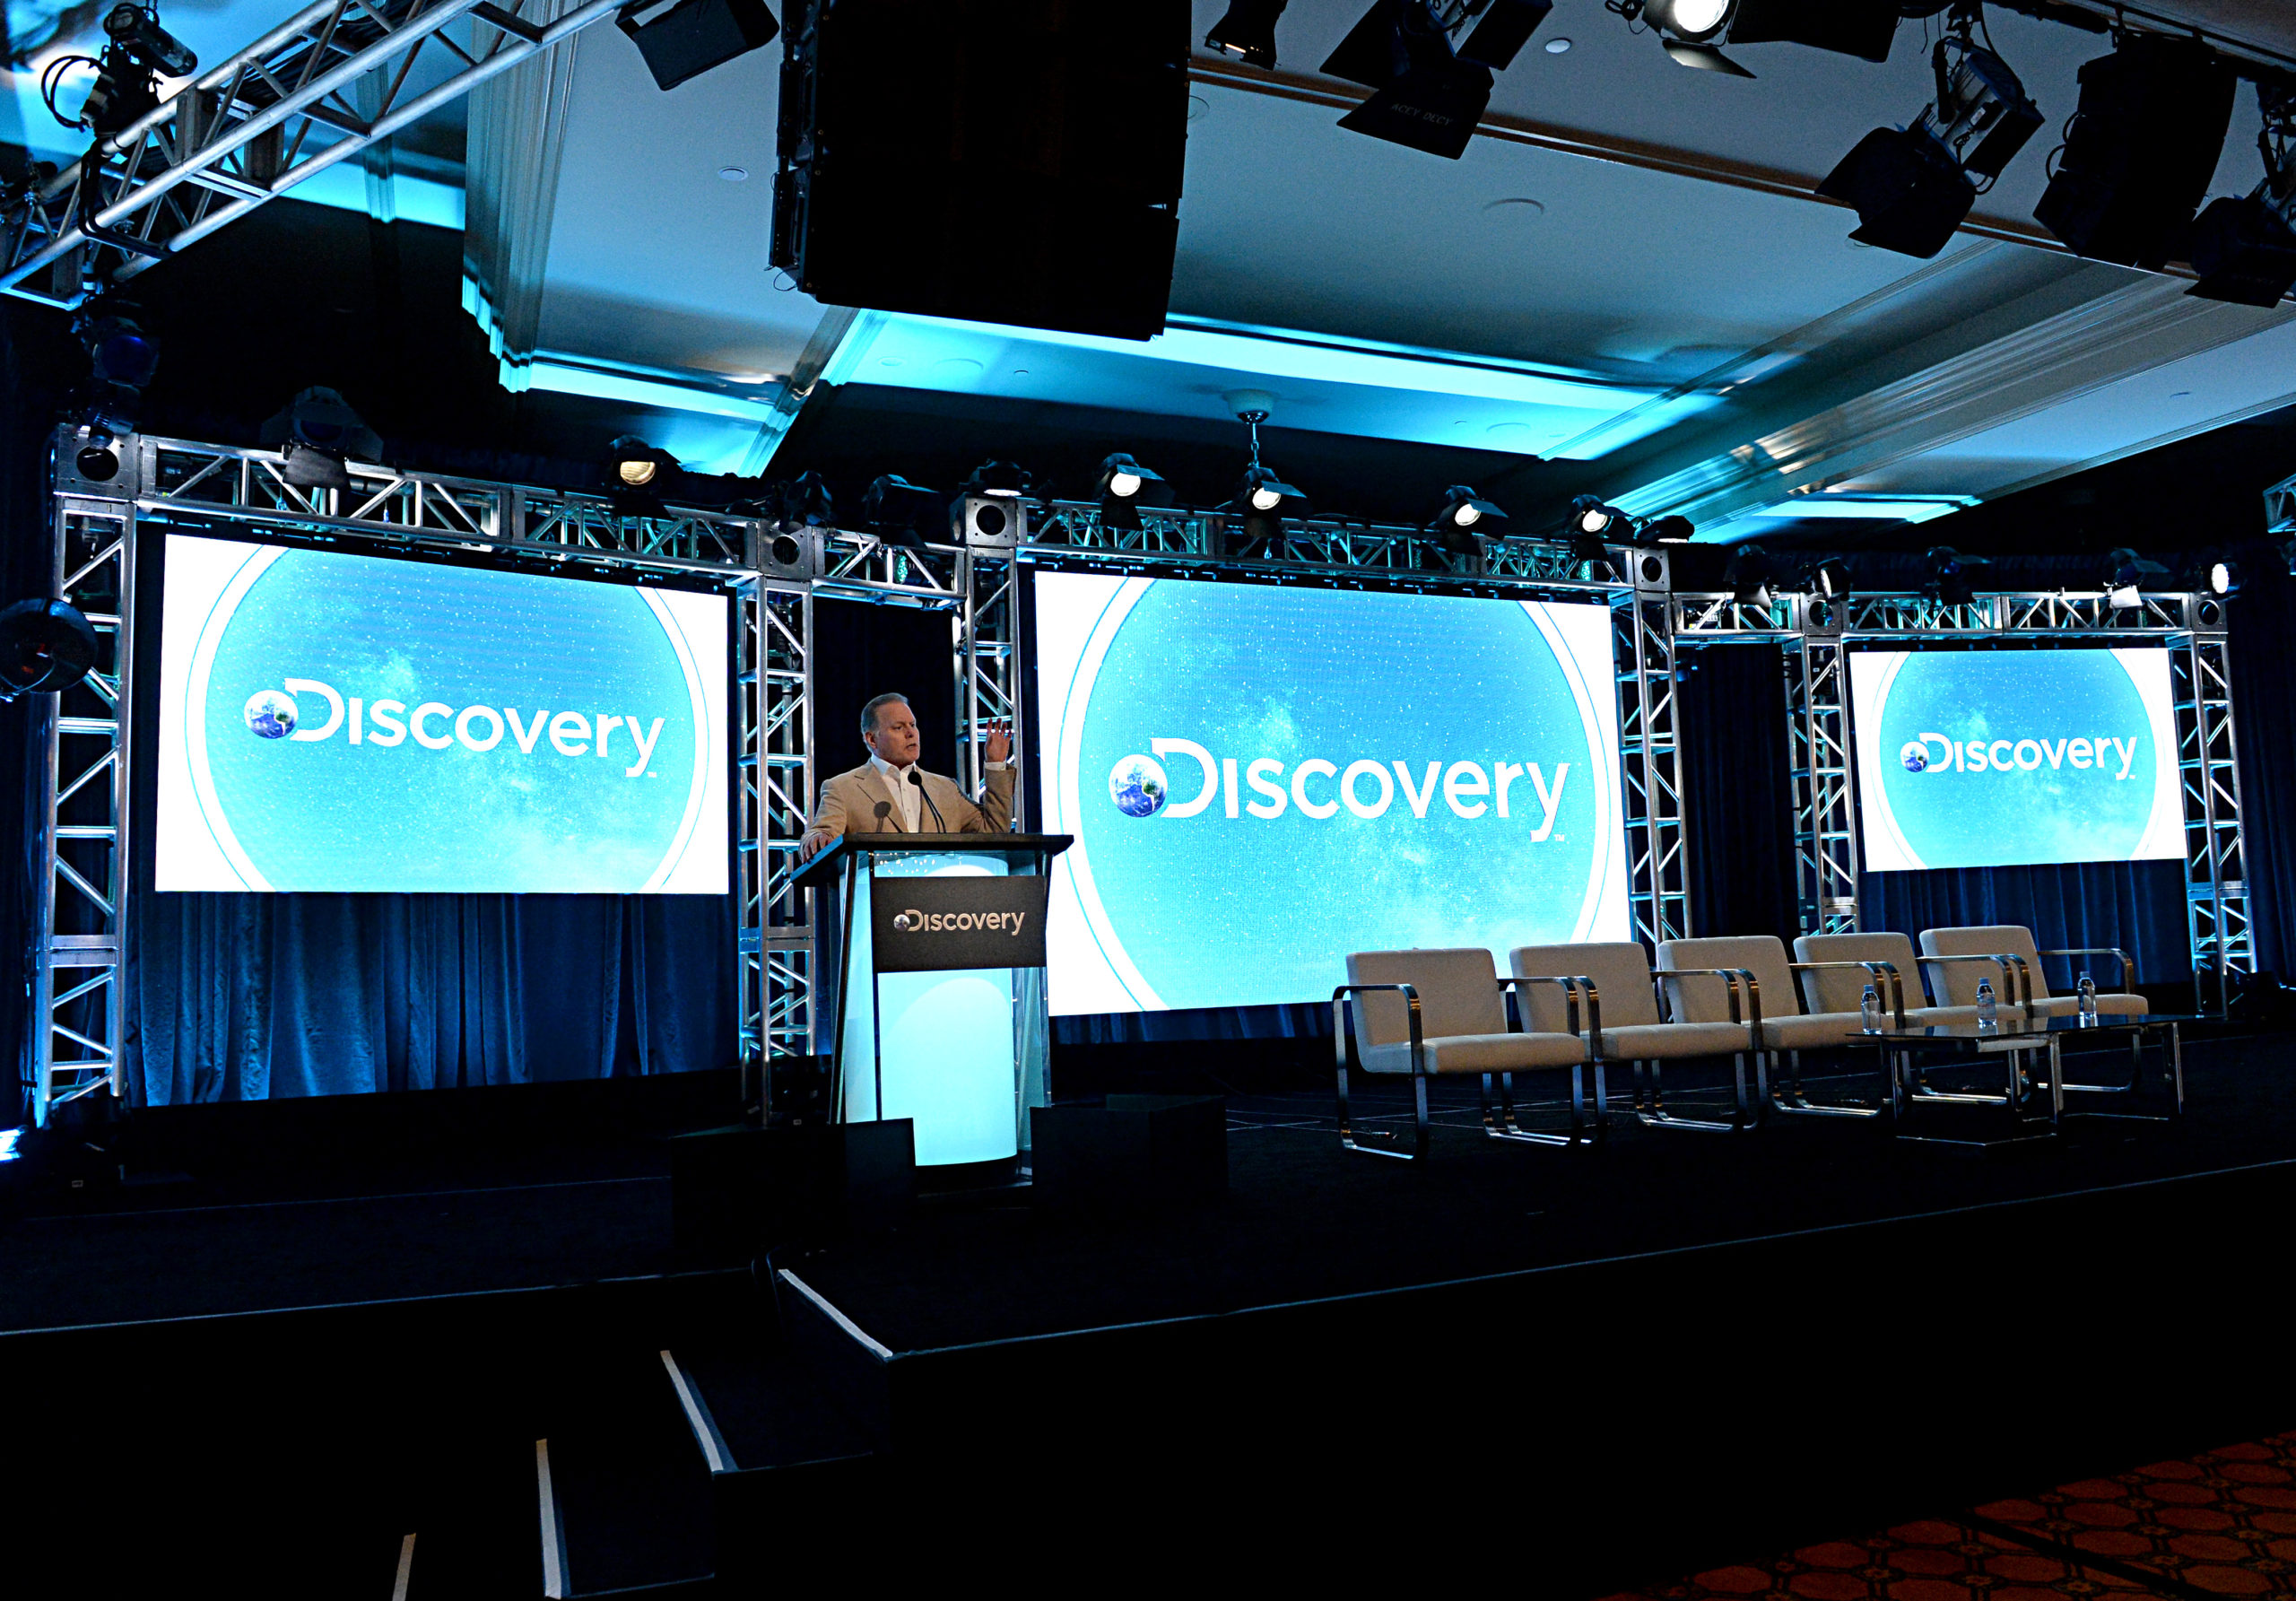 David Zaslav, president and CEO of Discovery, speaks onstage during a meeting on Jan. 16, 2020 in Pasadena, California. (Amanda Edwards/Getty Images for Discovery, Inc.)